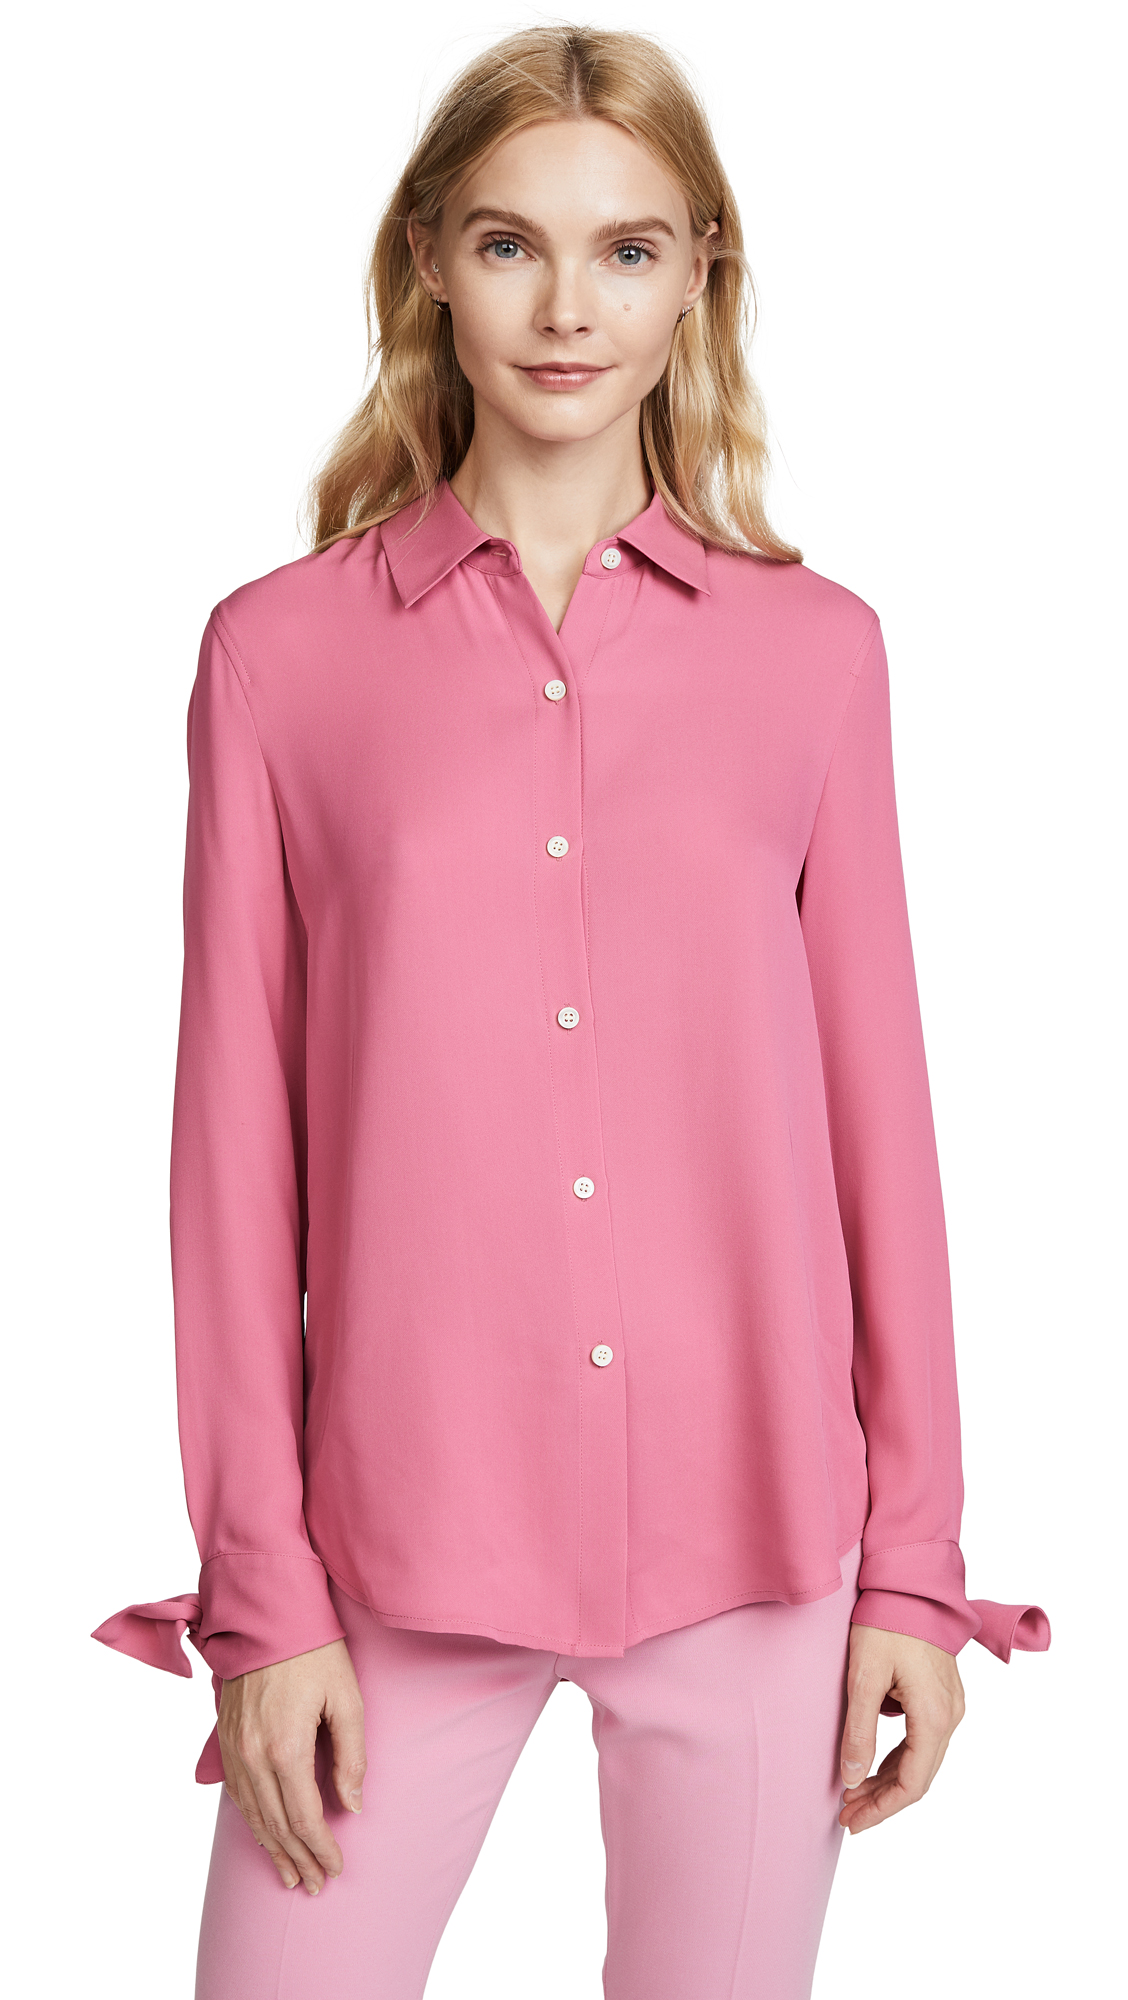 Theory Tie Cuff Shirt - Orchid Pink